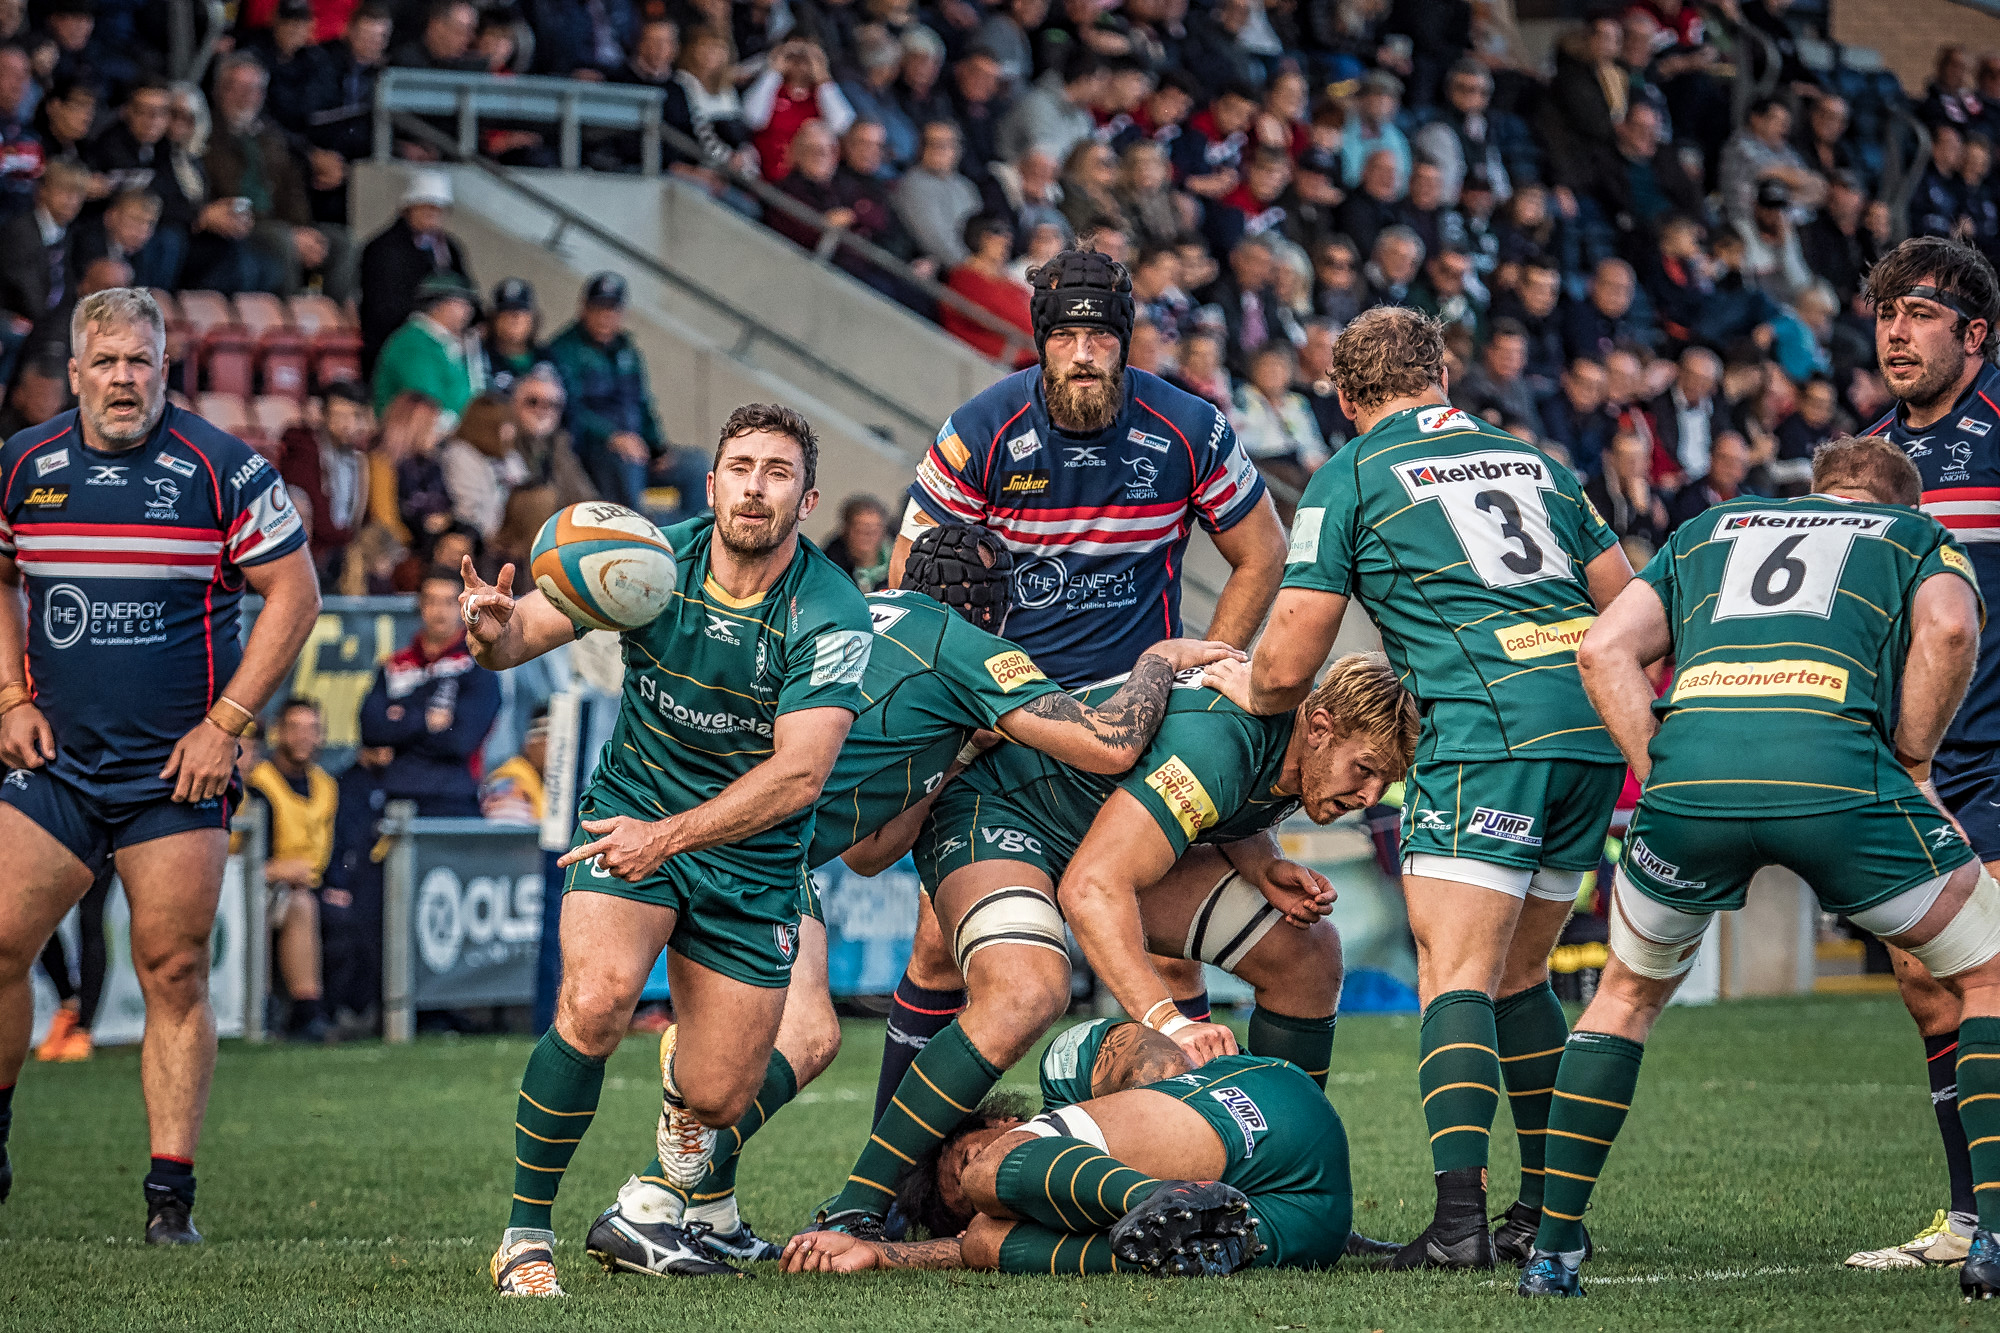 As I've said several times before, I really like the scrum half pass picture, especially when I'm right in line with the direction of the ball. Below, we have London Irish's Brendan McKibbin and, above, Knights scrum half Tom James